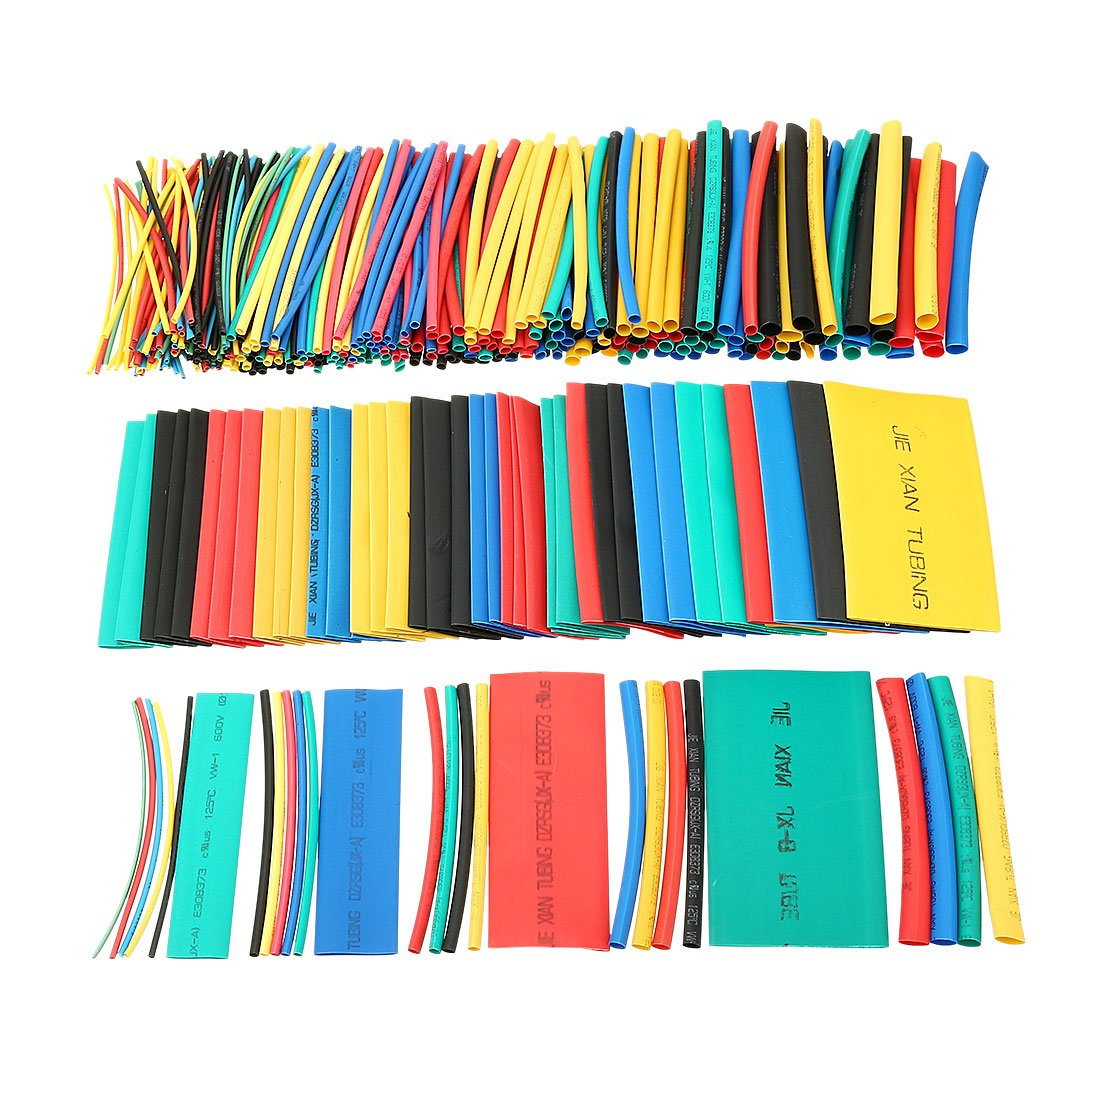 uxcell 410Pcs 2:1 Heat Shrink Tubing Tube Sleeving Wire Cable 5 Color 10 Sizes by uxcell (Image #1)